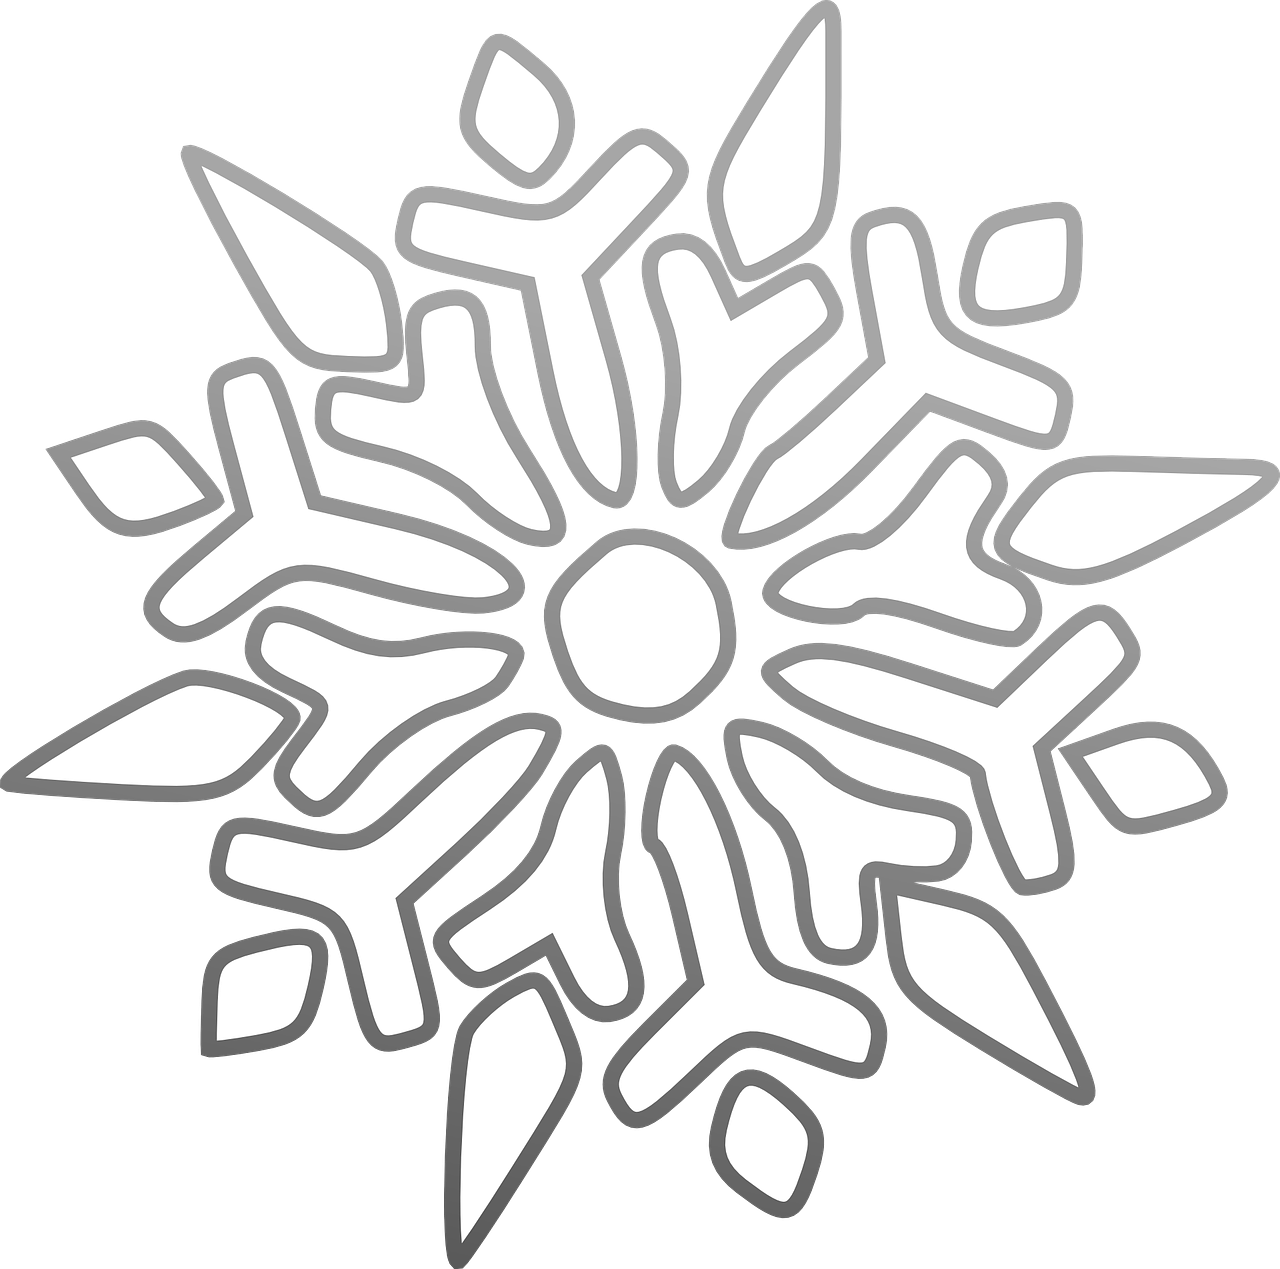 Snowflake pattern clipart royalty free download Snowflake Ice Star Frost Cold transparent image   Snowflake ... royalty free download